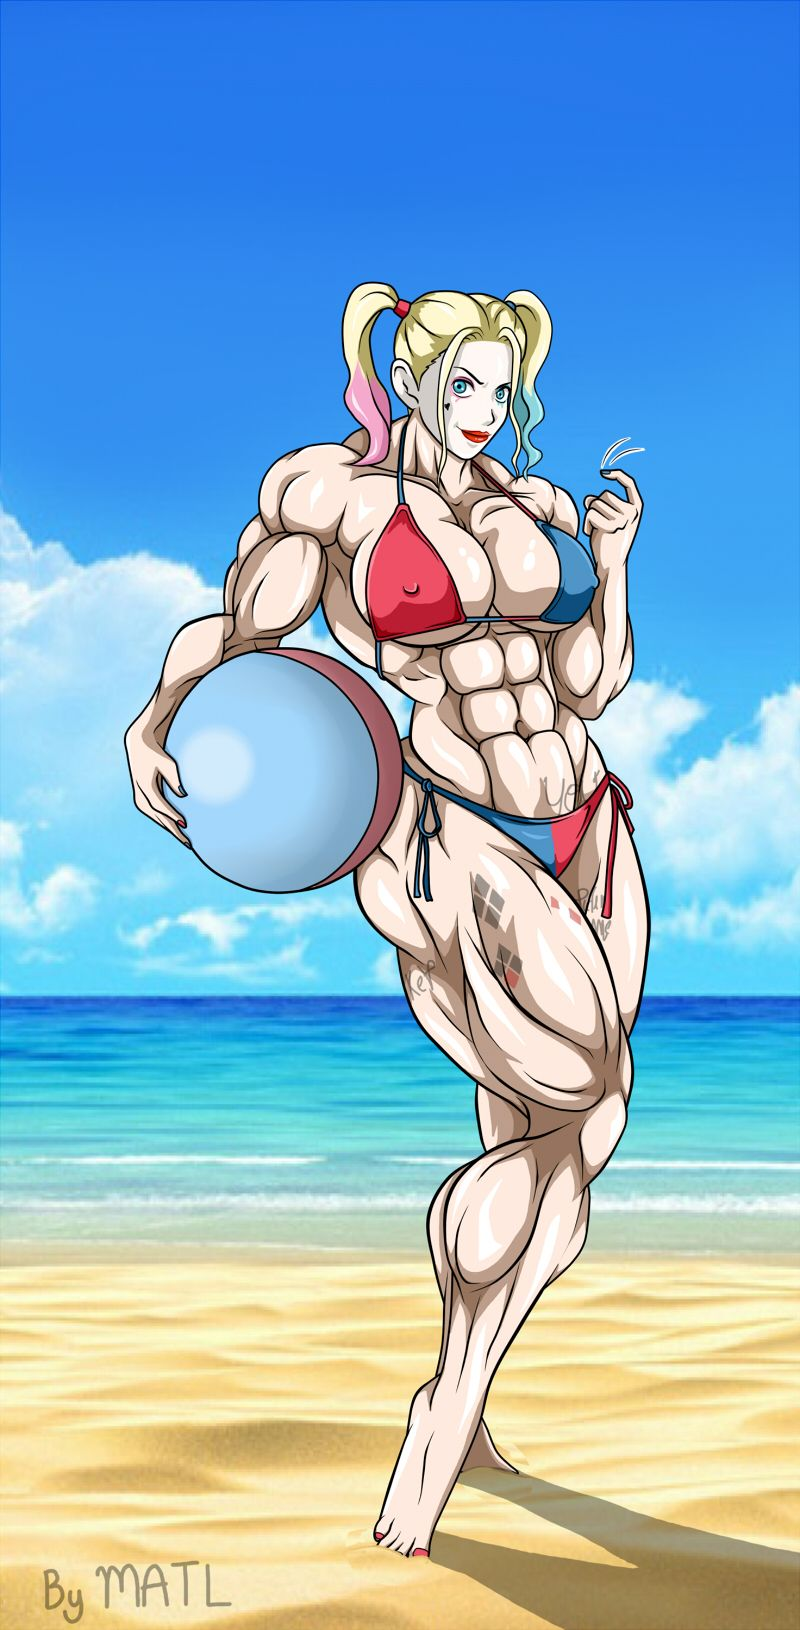 harley at the beachmatl on deviantart | muscle girl art in 2019